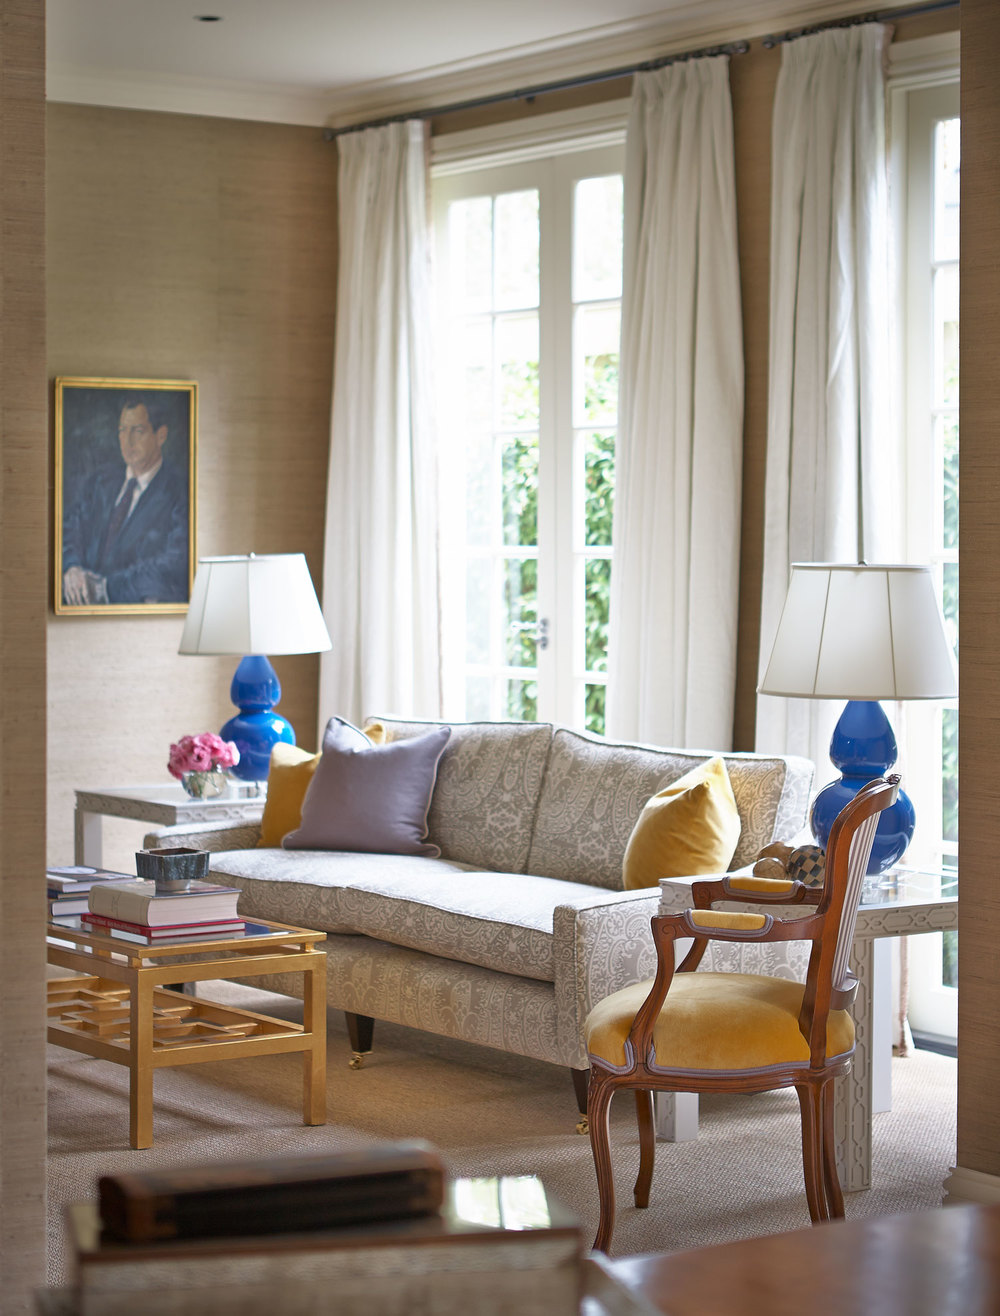 living-room-royal-blue-ceramic-lamps-collette-sofa-quadrille-printed-fabric-taupe-neutral-mustard-velvet-gold-leaf-coffee-table-white-linen-window-dressing-diane-bergeron.jpg